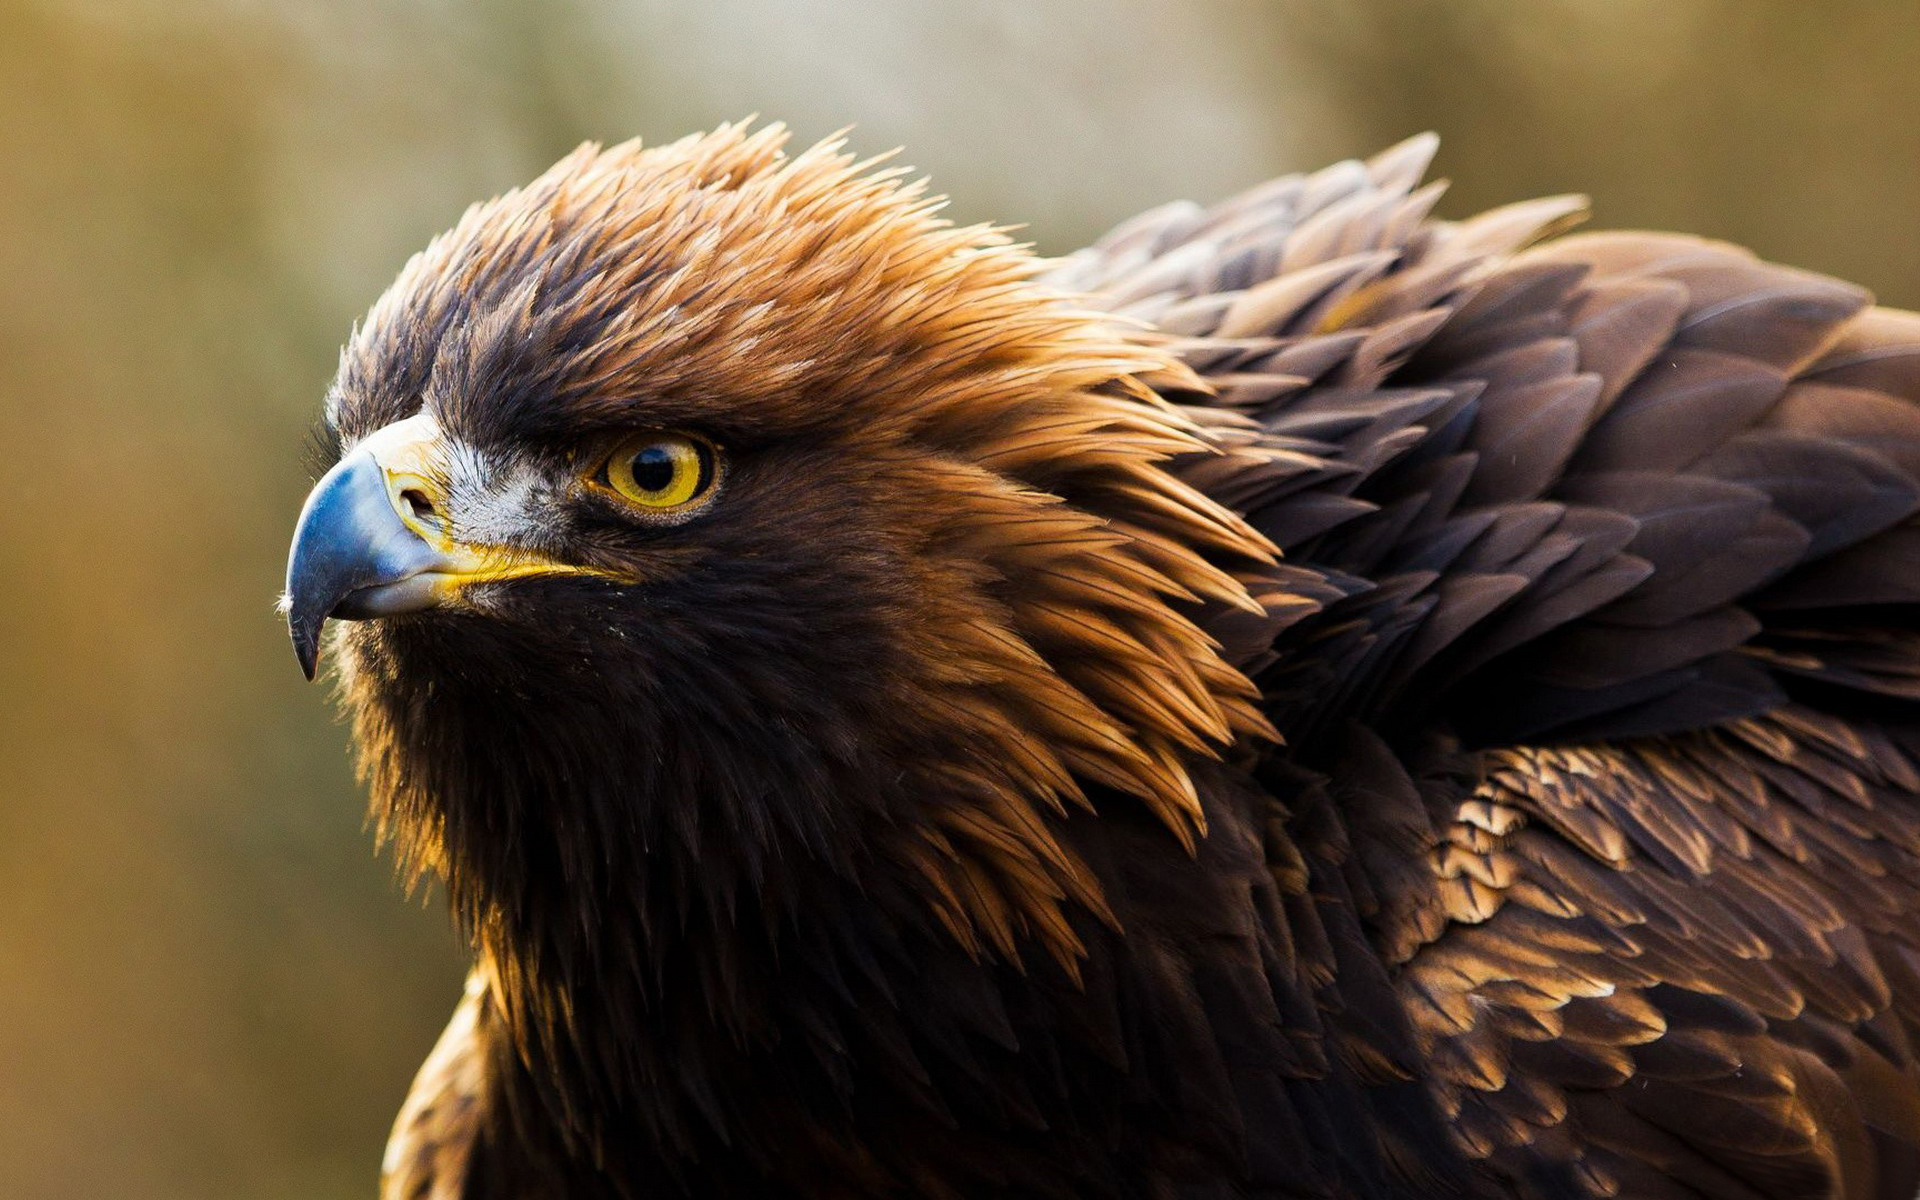 Hawk full hd wallpaper and background image 1920x1200 - Hawk iphone wallpaper ...